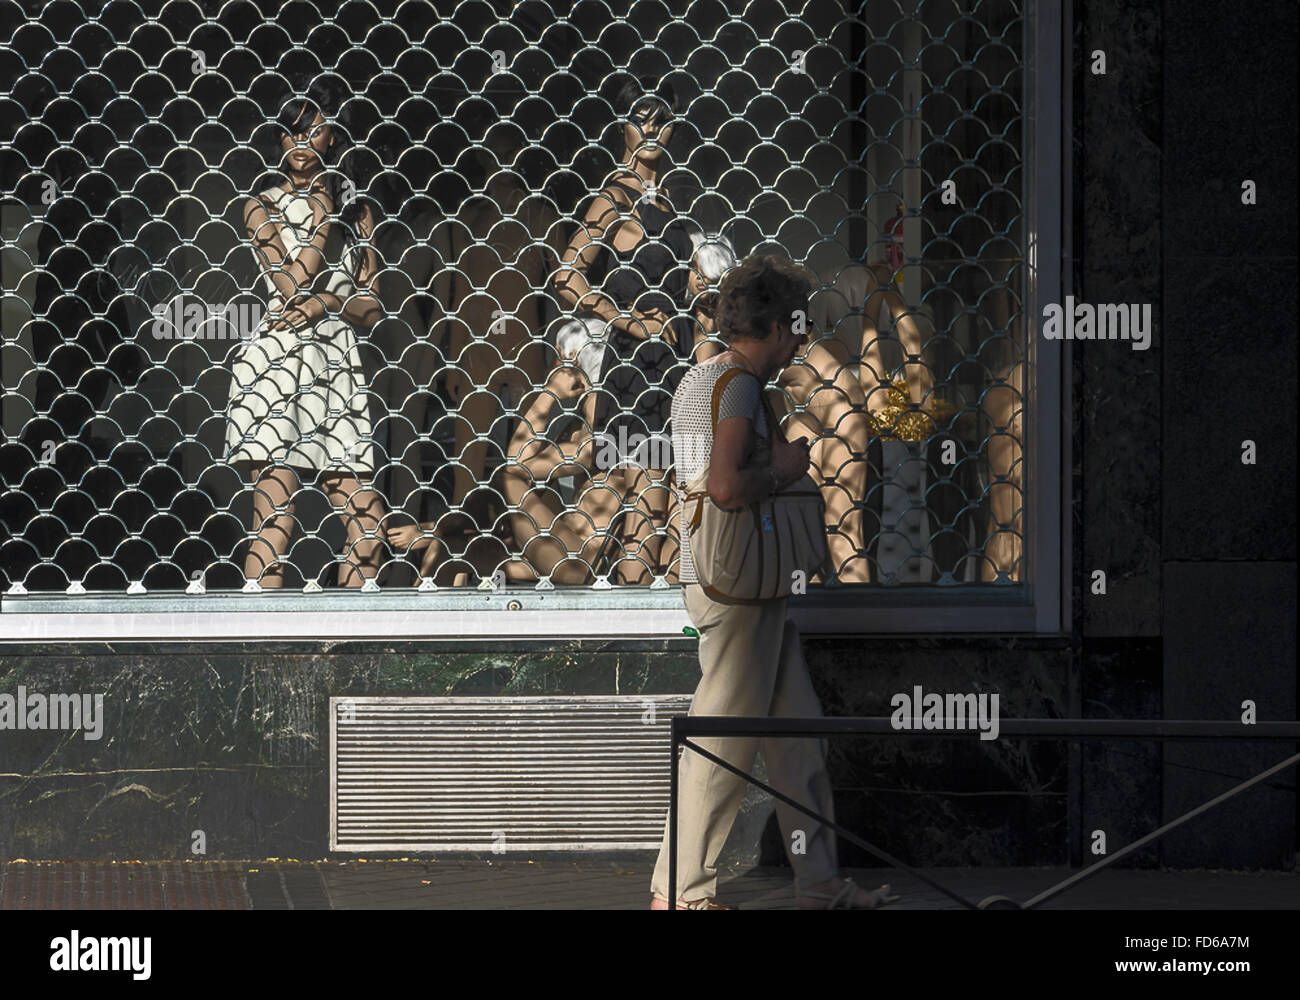 A old woman crossing a shop window with models in shadows in a street of Madrid, Spain - Stock Image